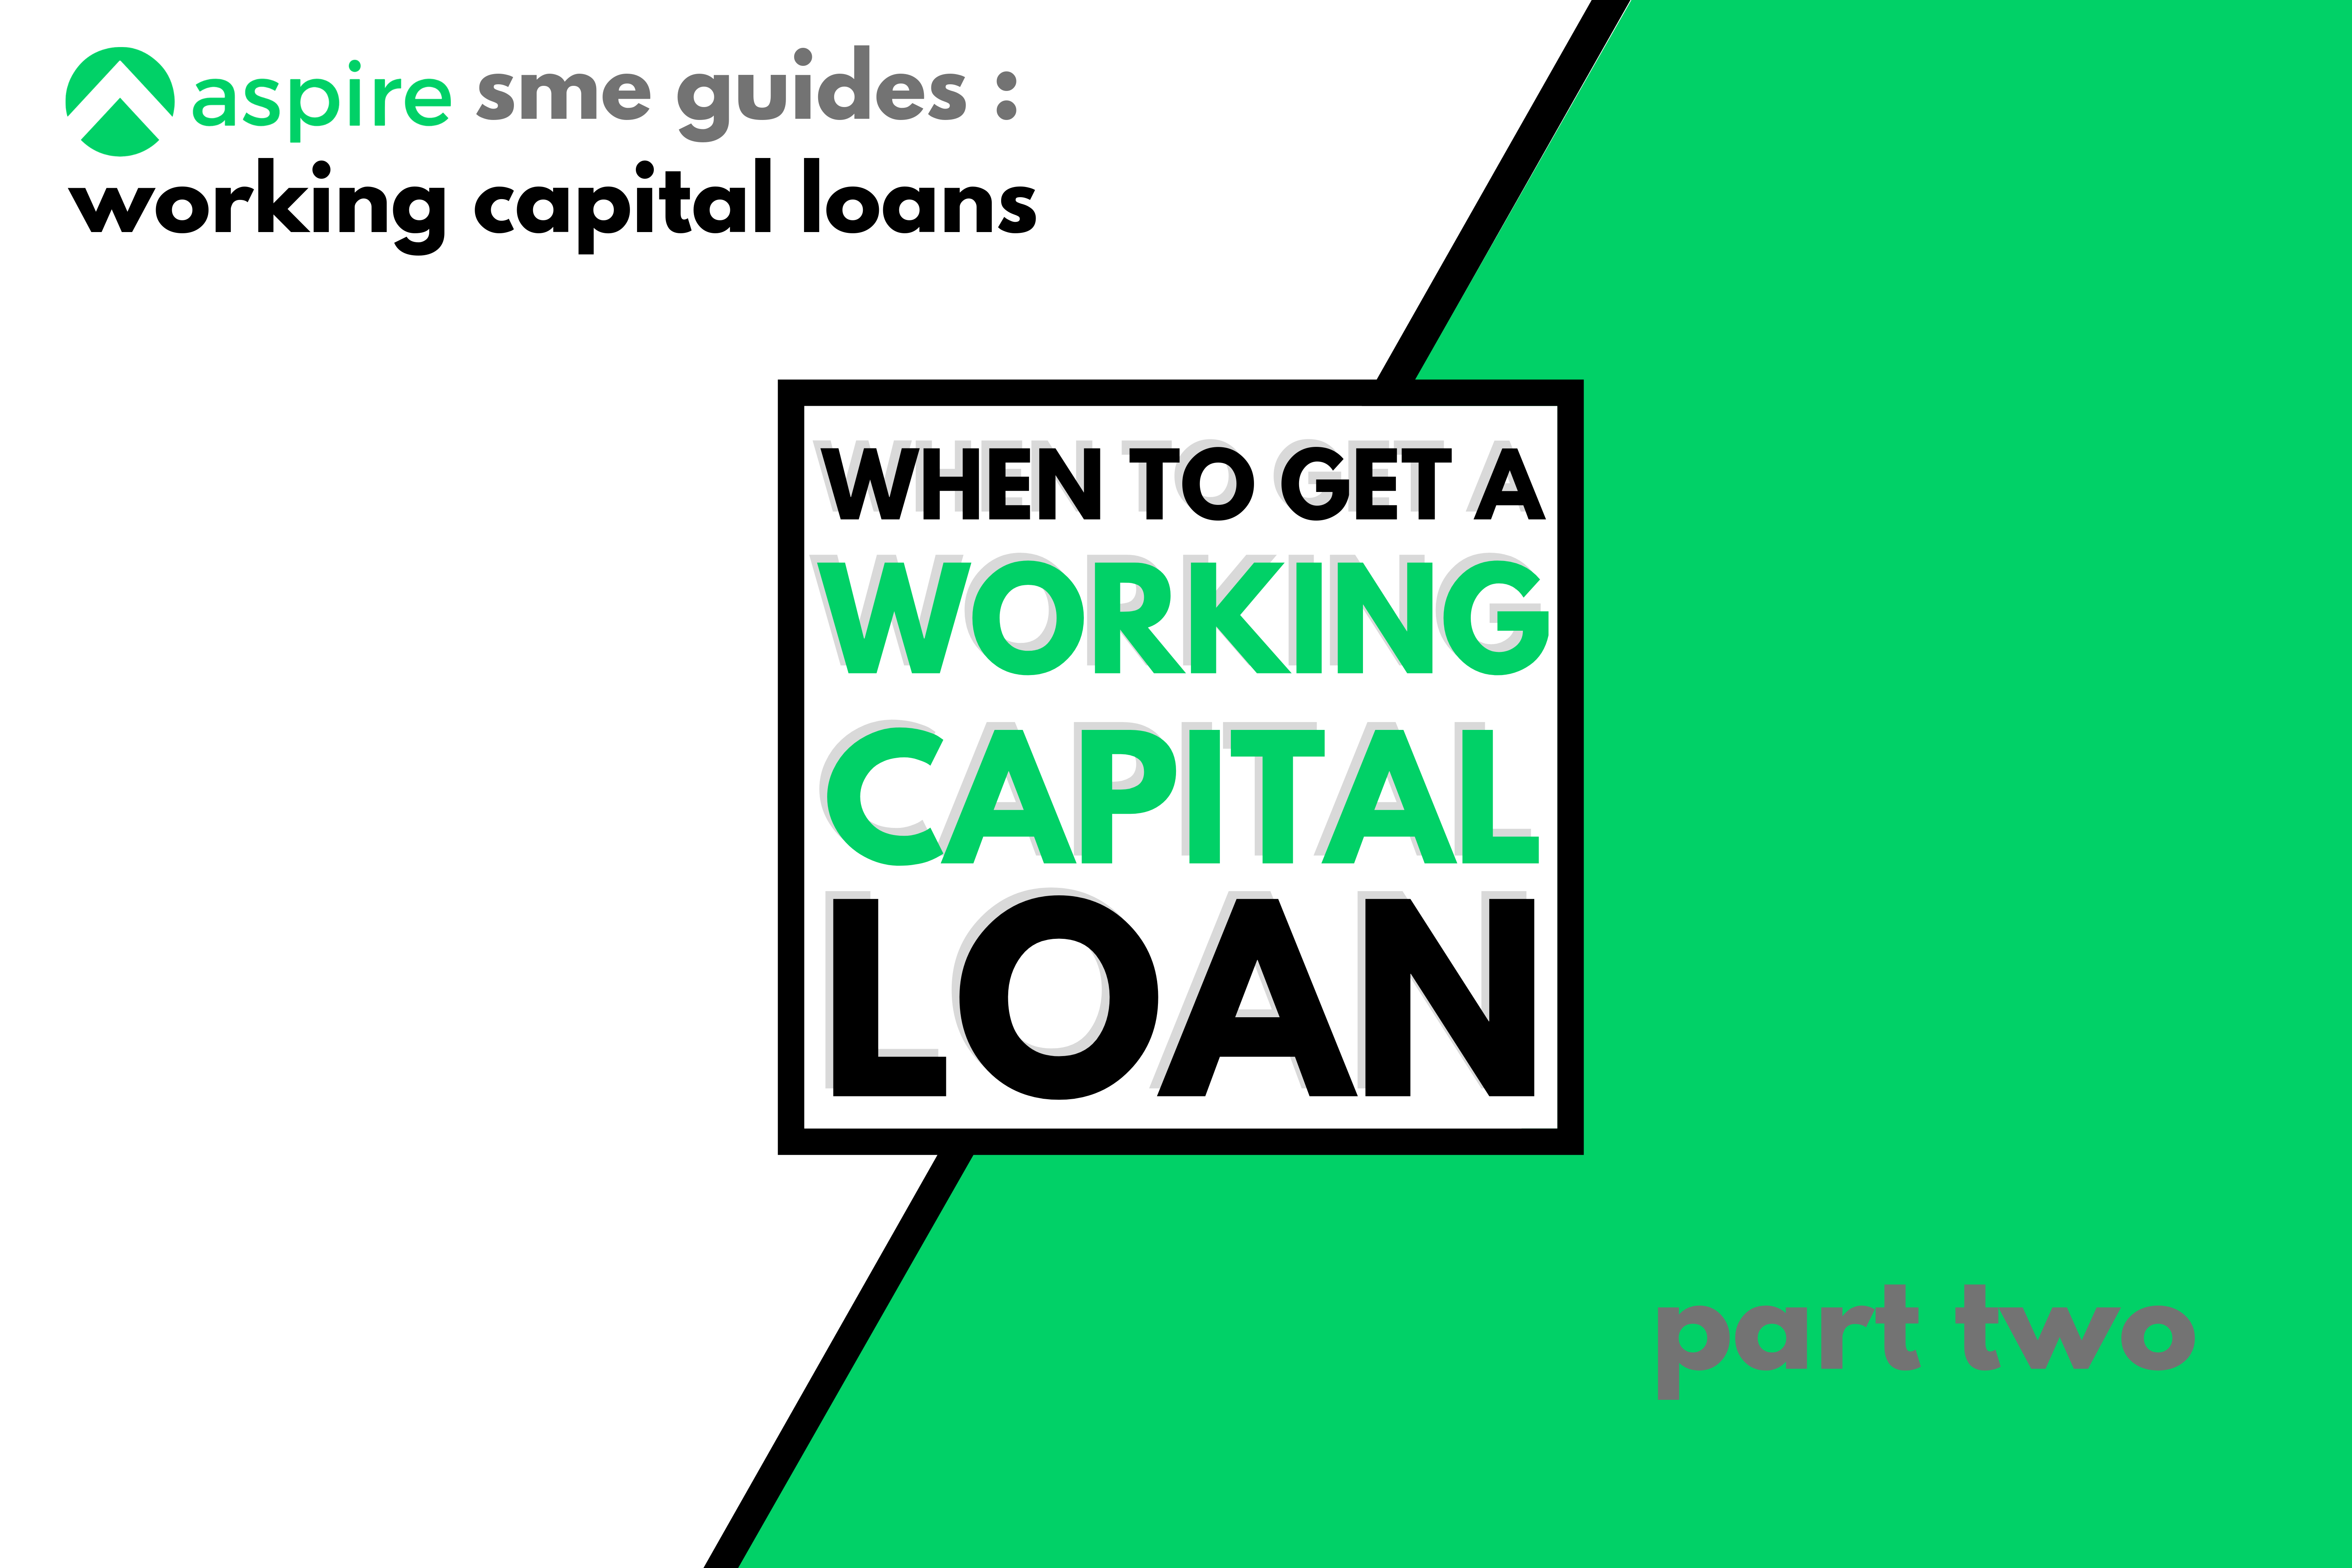 2. When to Get a Working Capital Loan | SME Guides